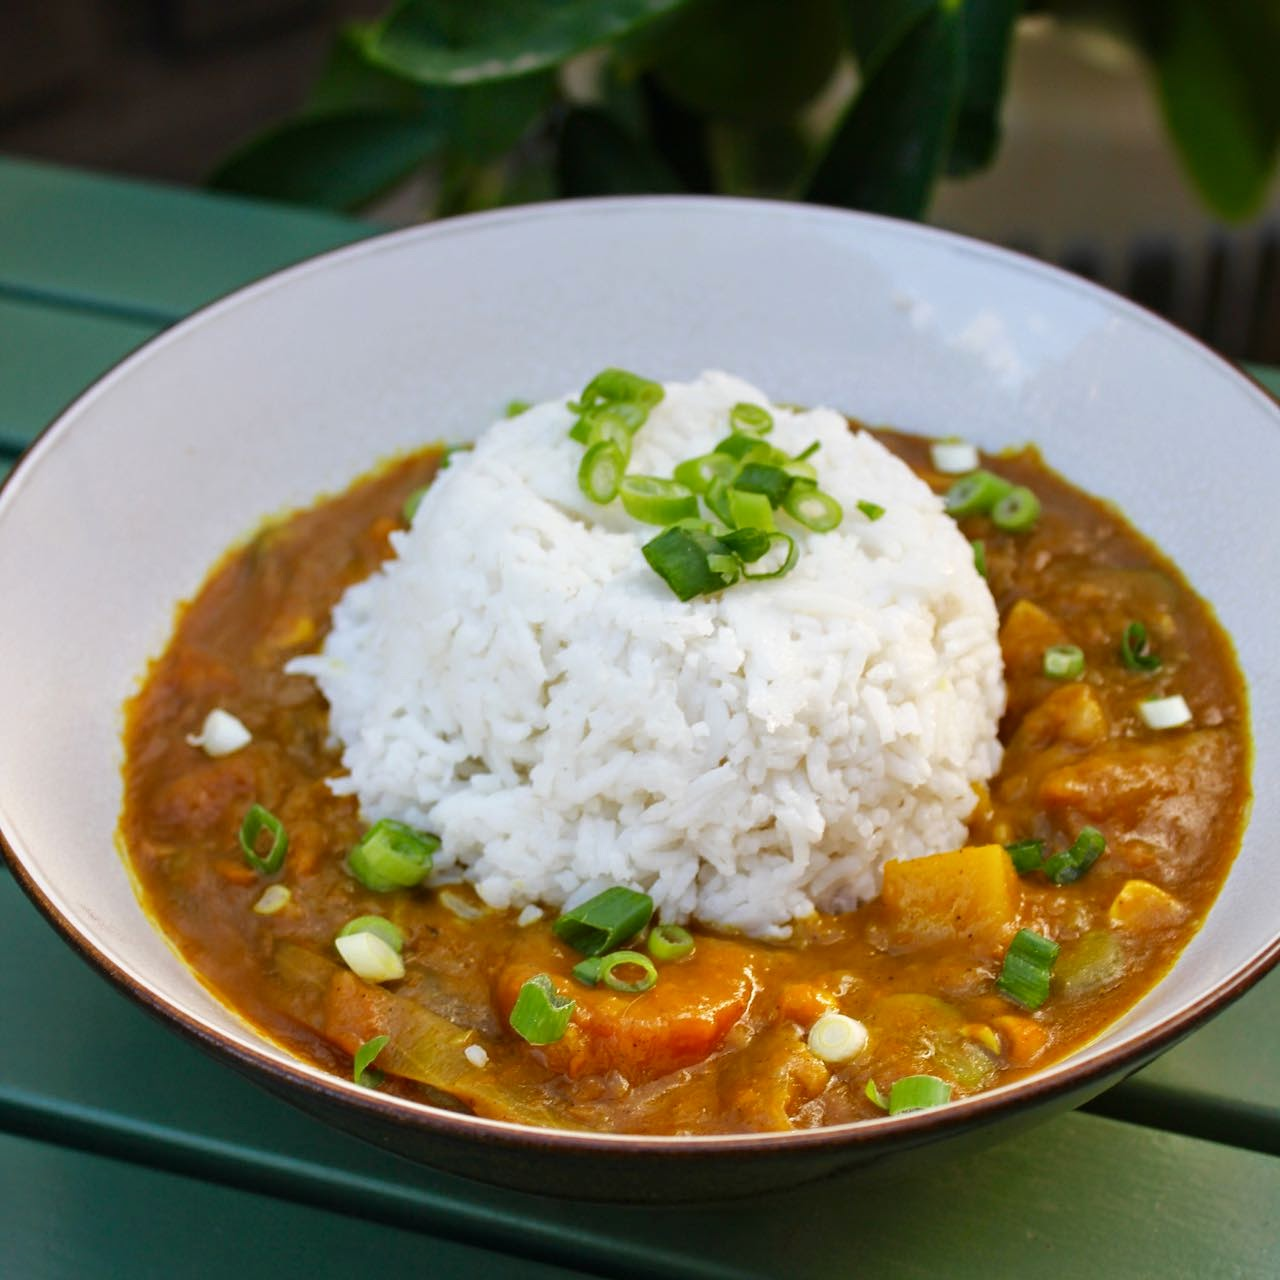 Green Gourmet Giraffe Vegetarian Japanese Curry